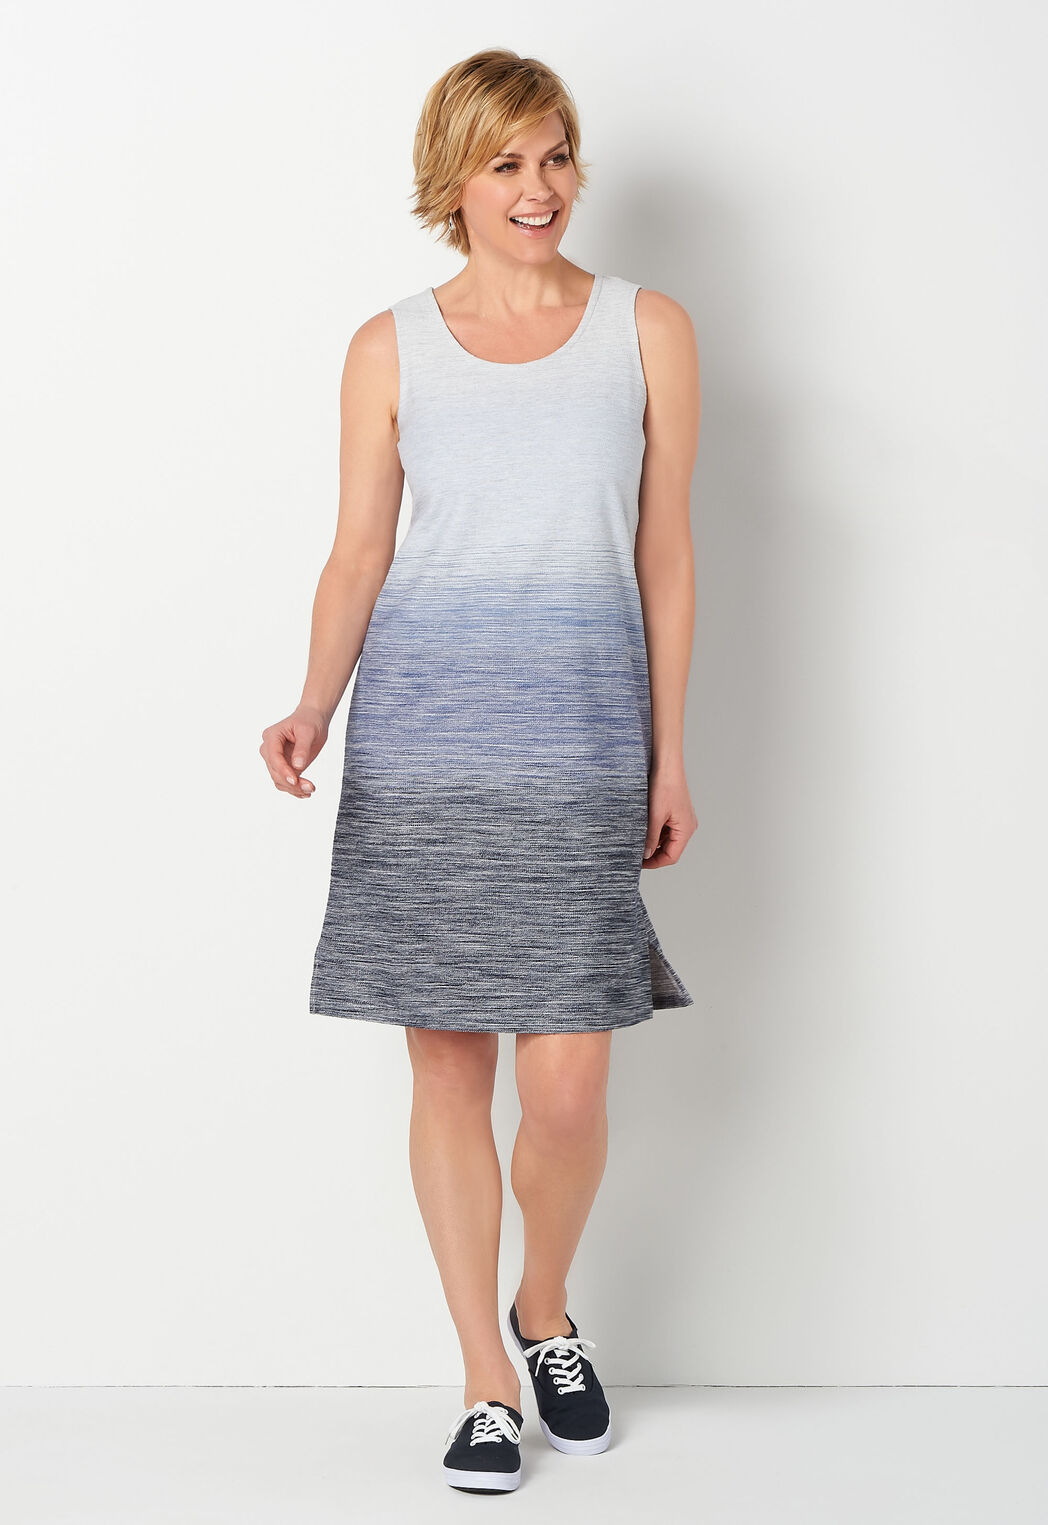 83fd6301e24 Grey Cocktail Dress Outfit - Gomes Weine AG